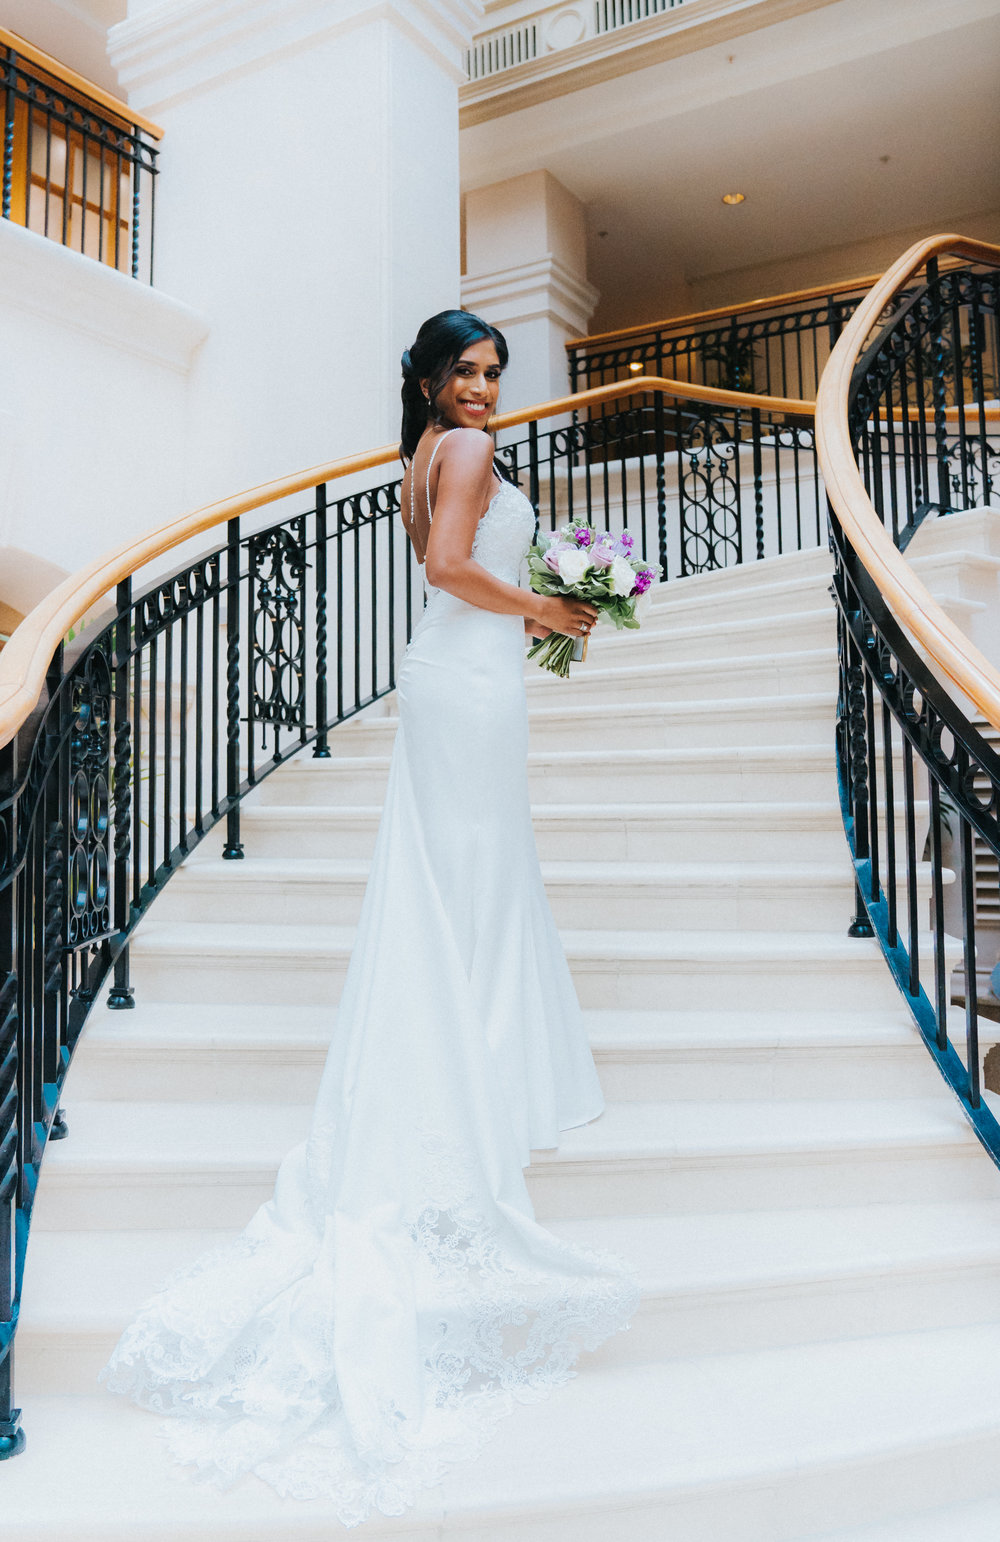 anglo-asian-hindu-civil-wedding-photography-videography-london-portrait-marylebone-old-town-hall-landmark-hotel-18